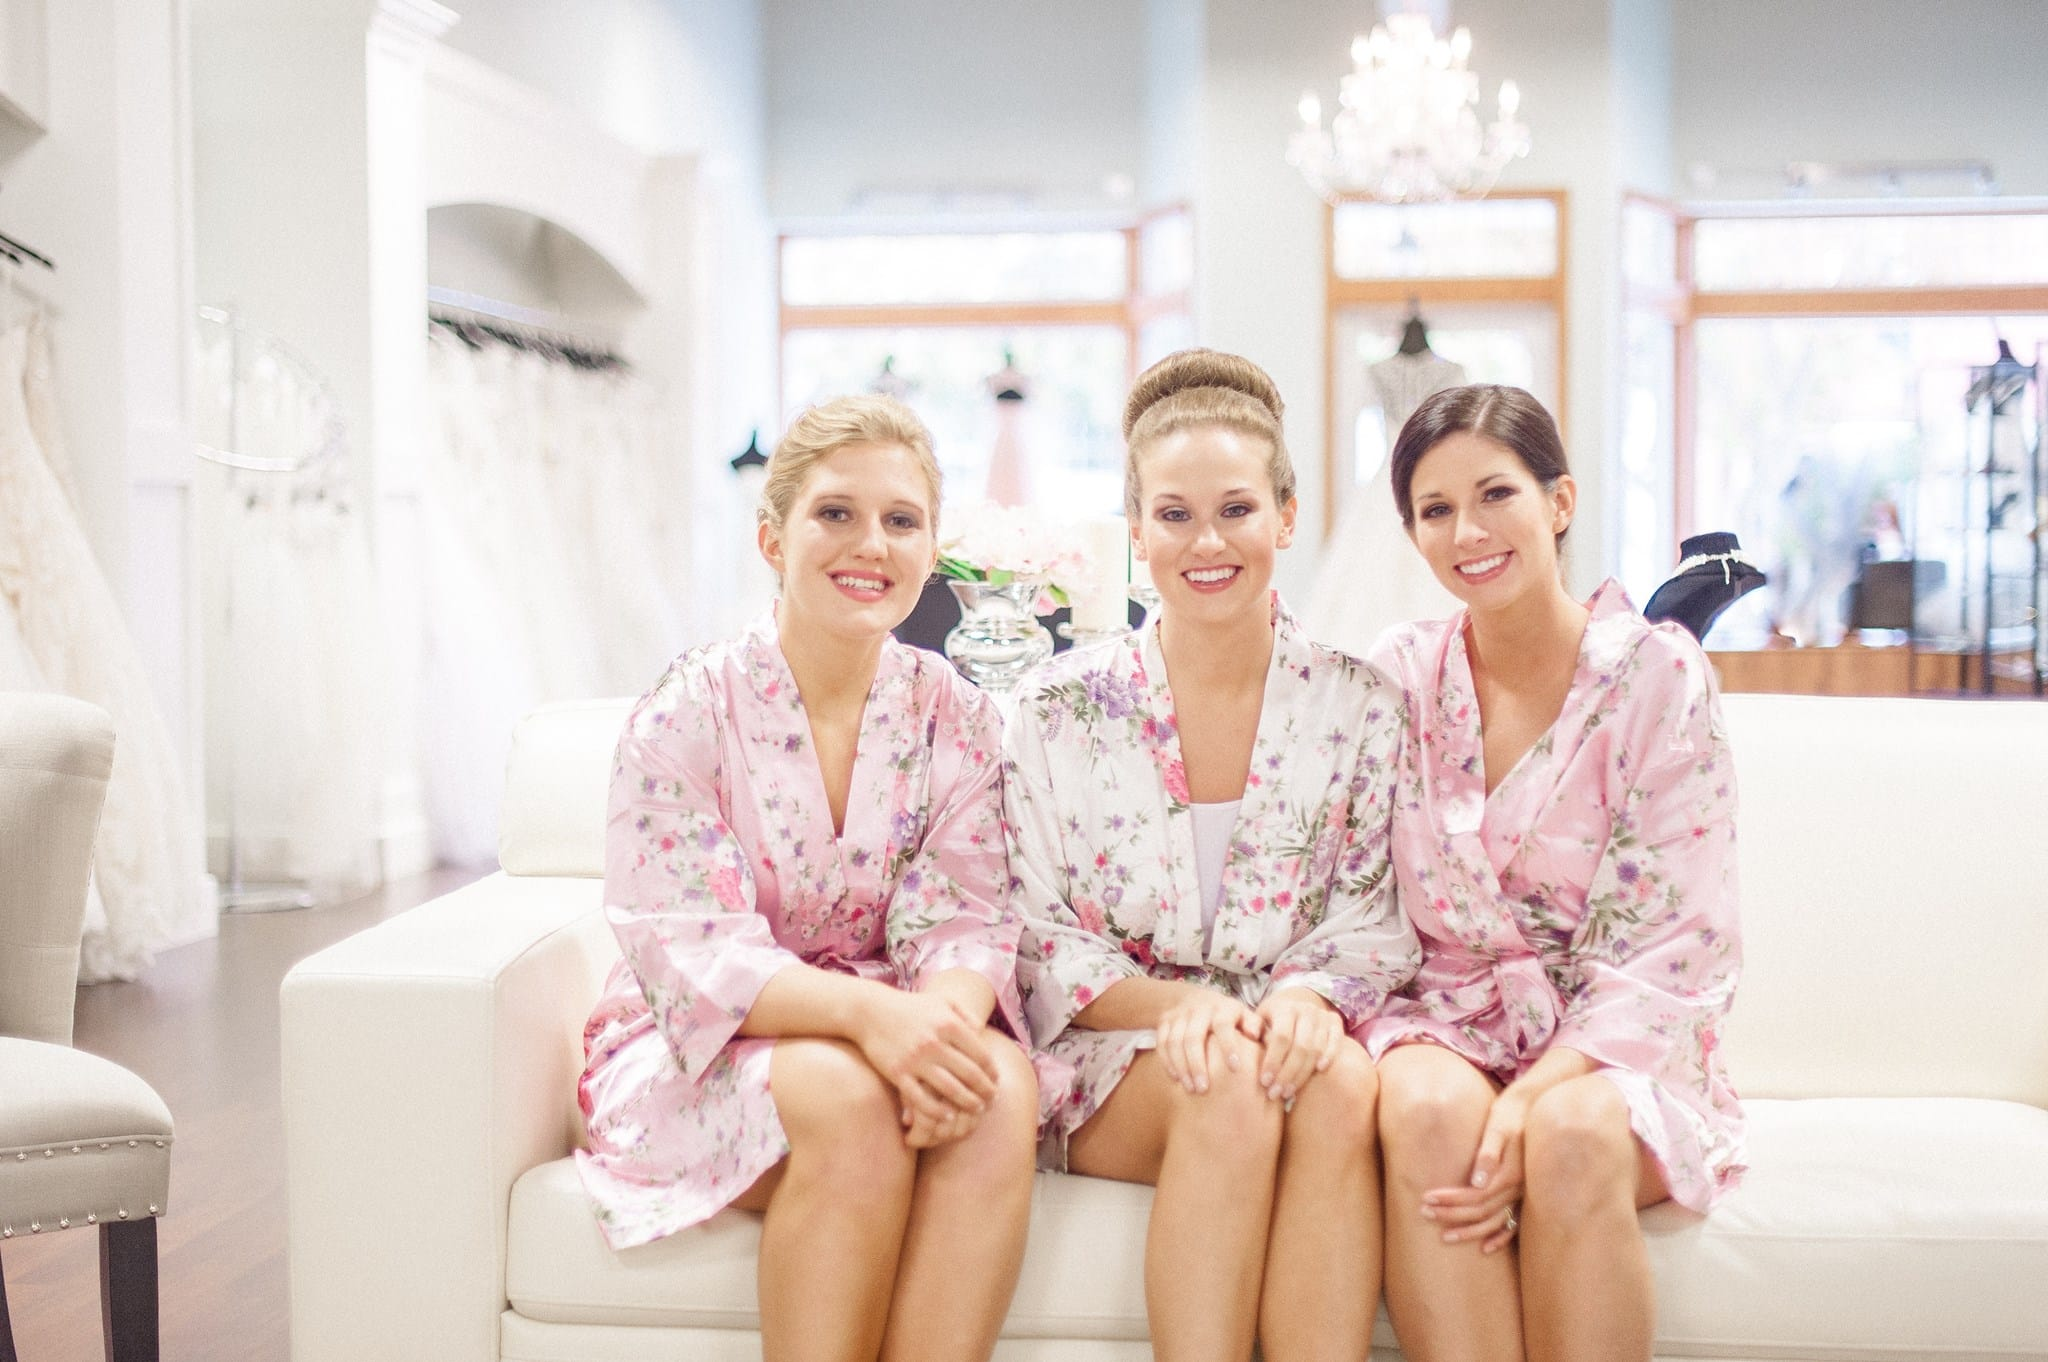 Bride with Her Bridesmaids Sitting in Robes at a Bridal Boutique